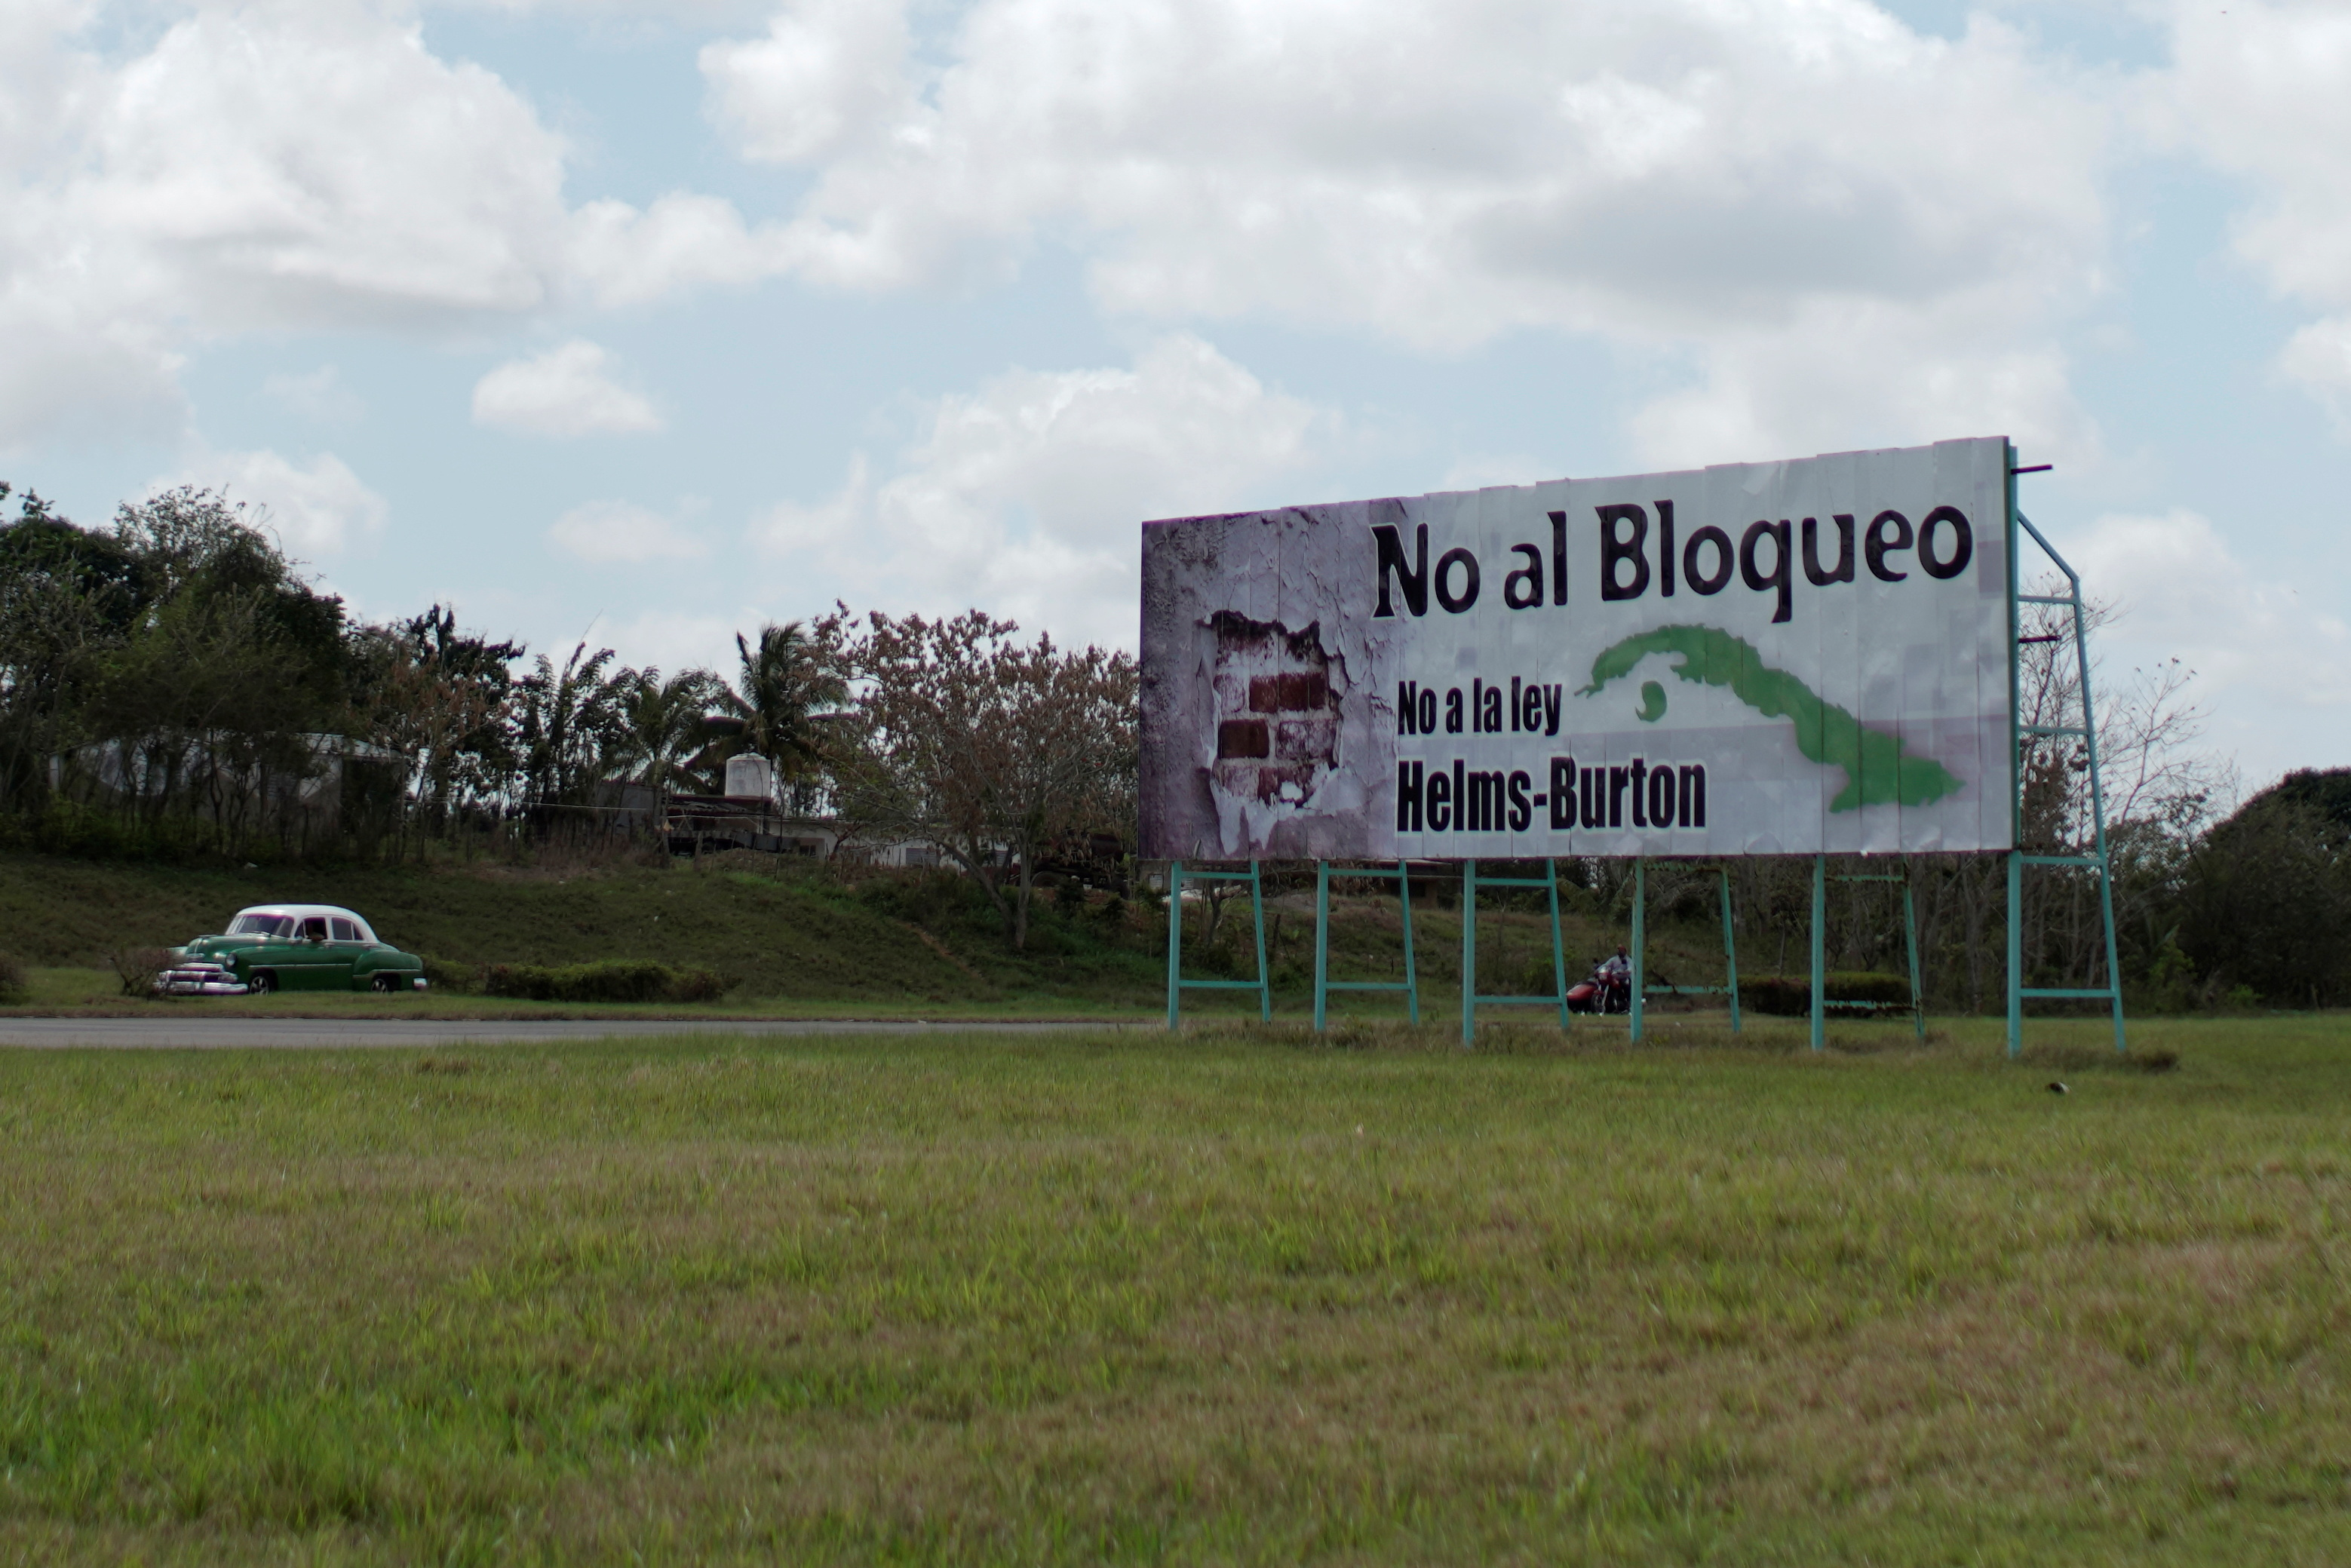 A vintage car passes by a billboard which reads in Spanish